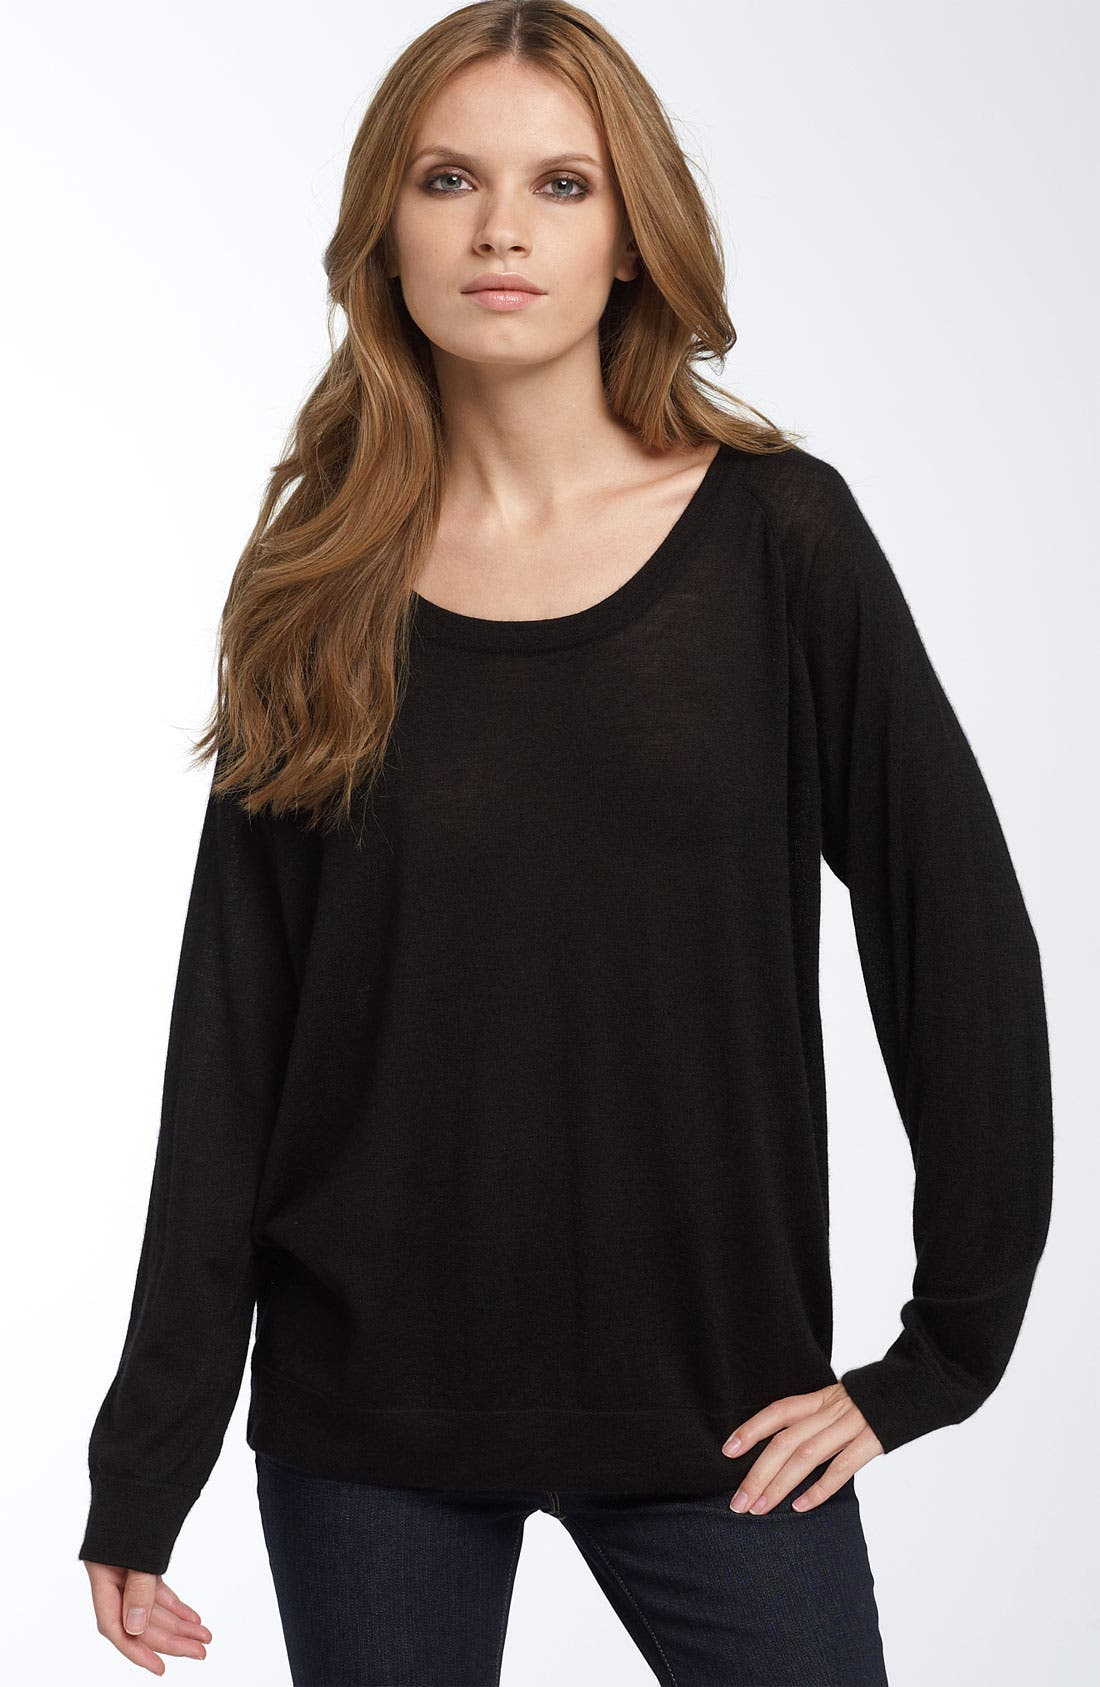 WILSTER Dolman Sleeve Cashmere Sweater, Main, color, 001